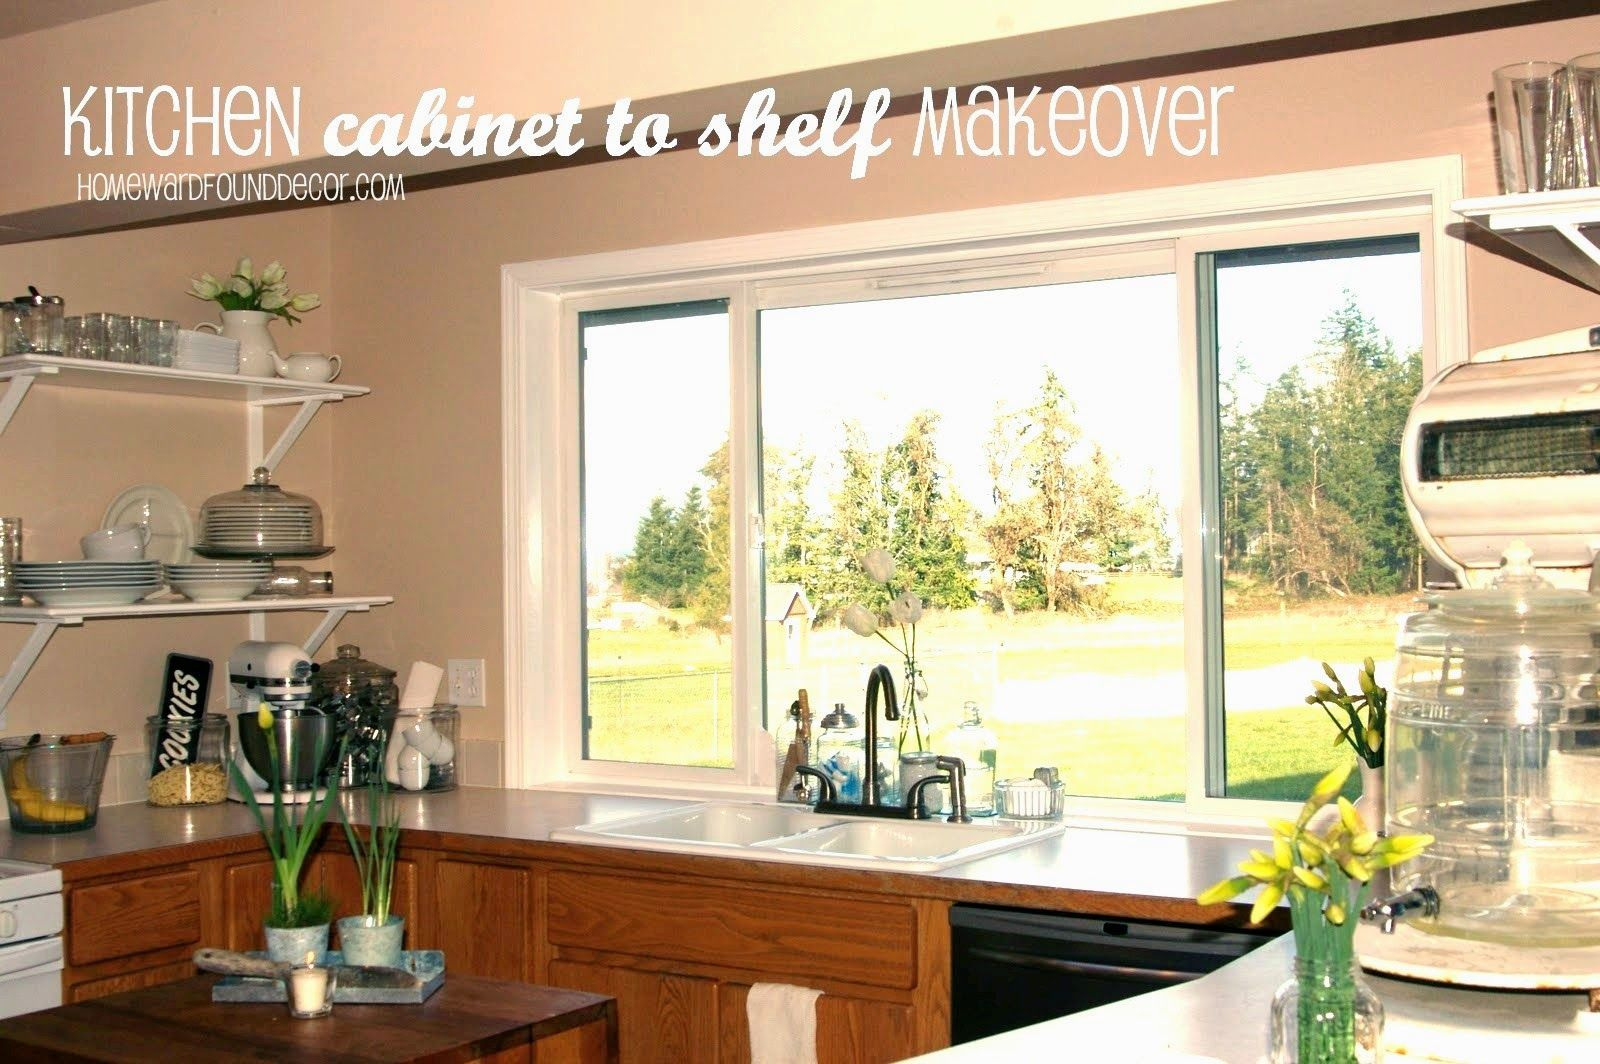 DIY Kitchen to Shelf Makeover (With images